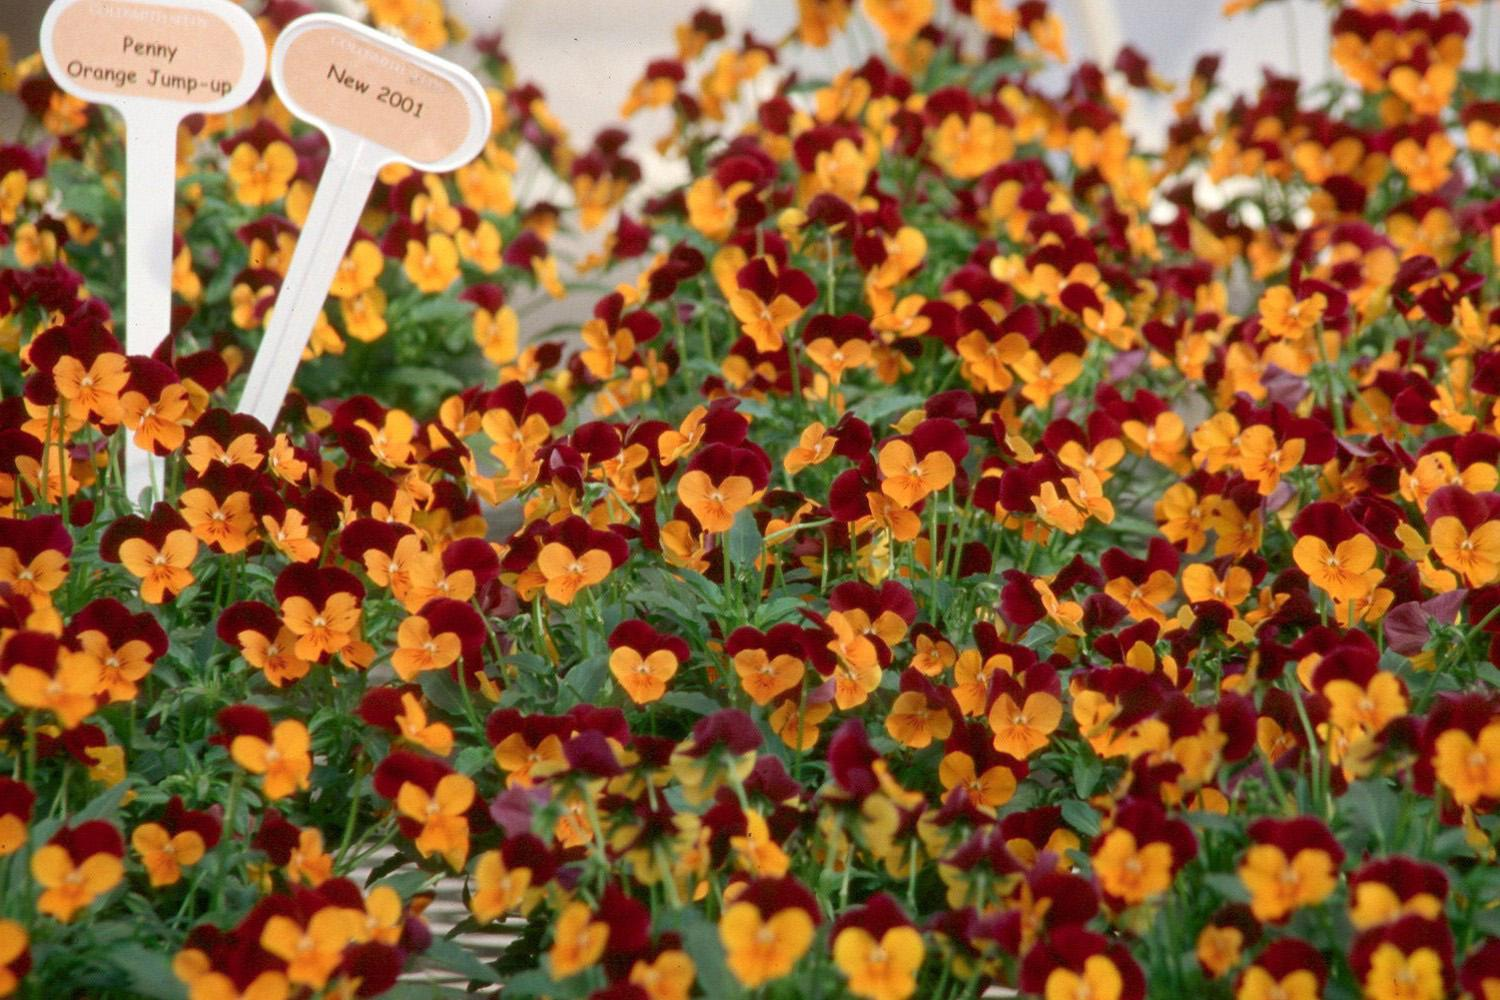 Pansy Orange Jump-up viola